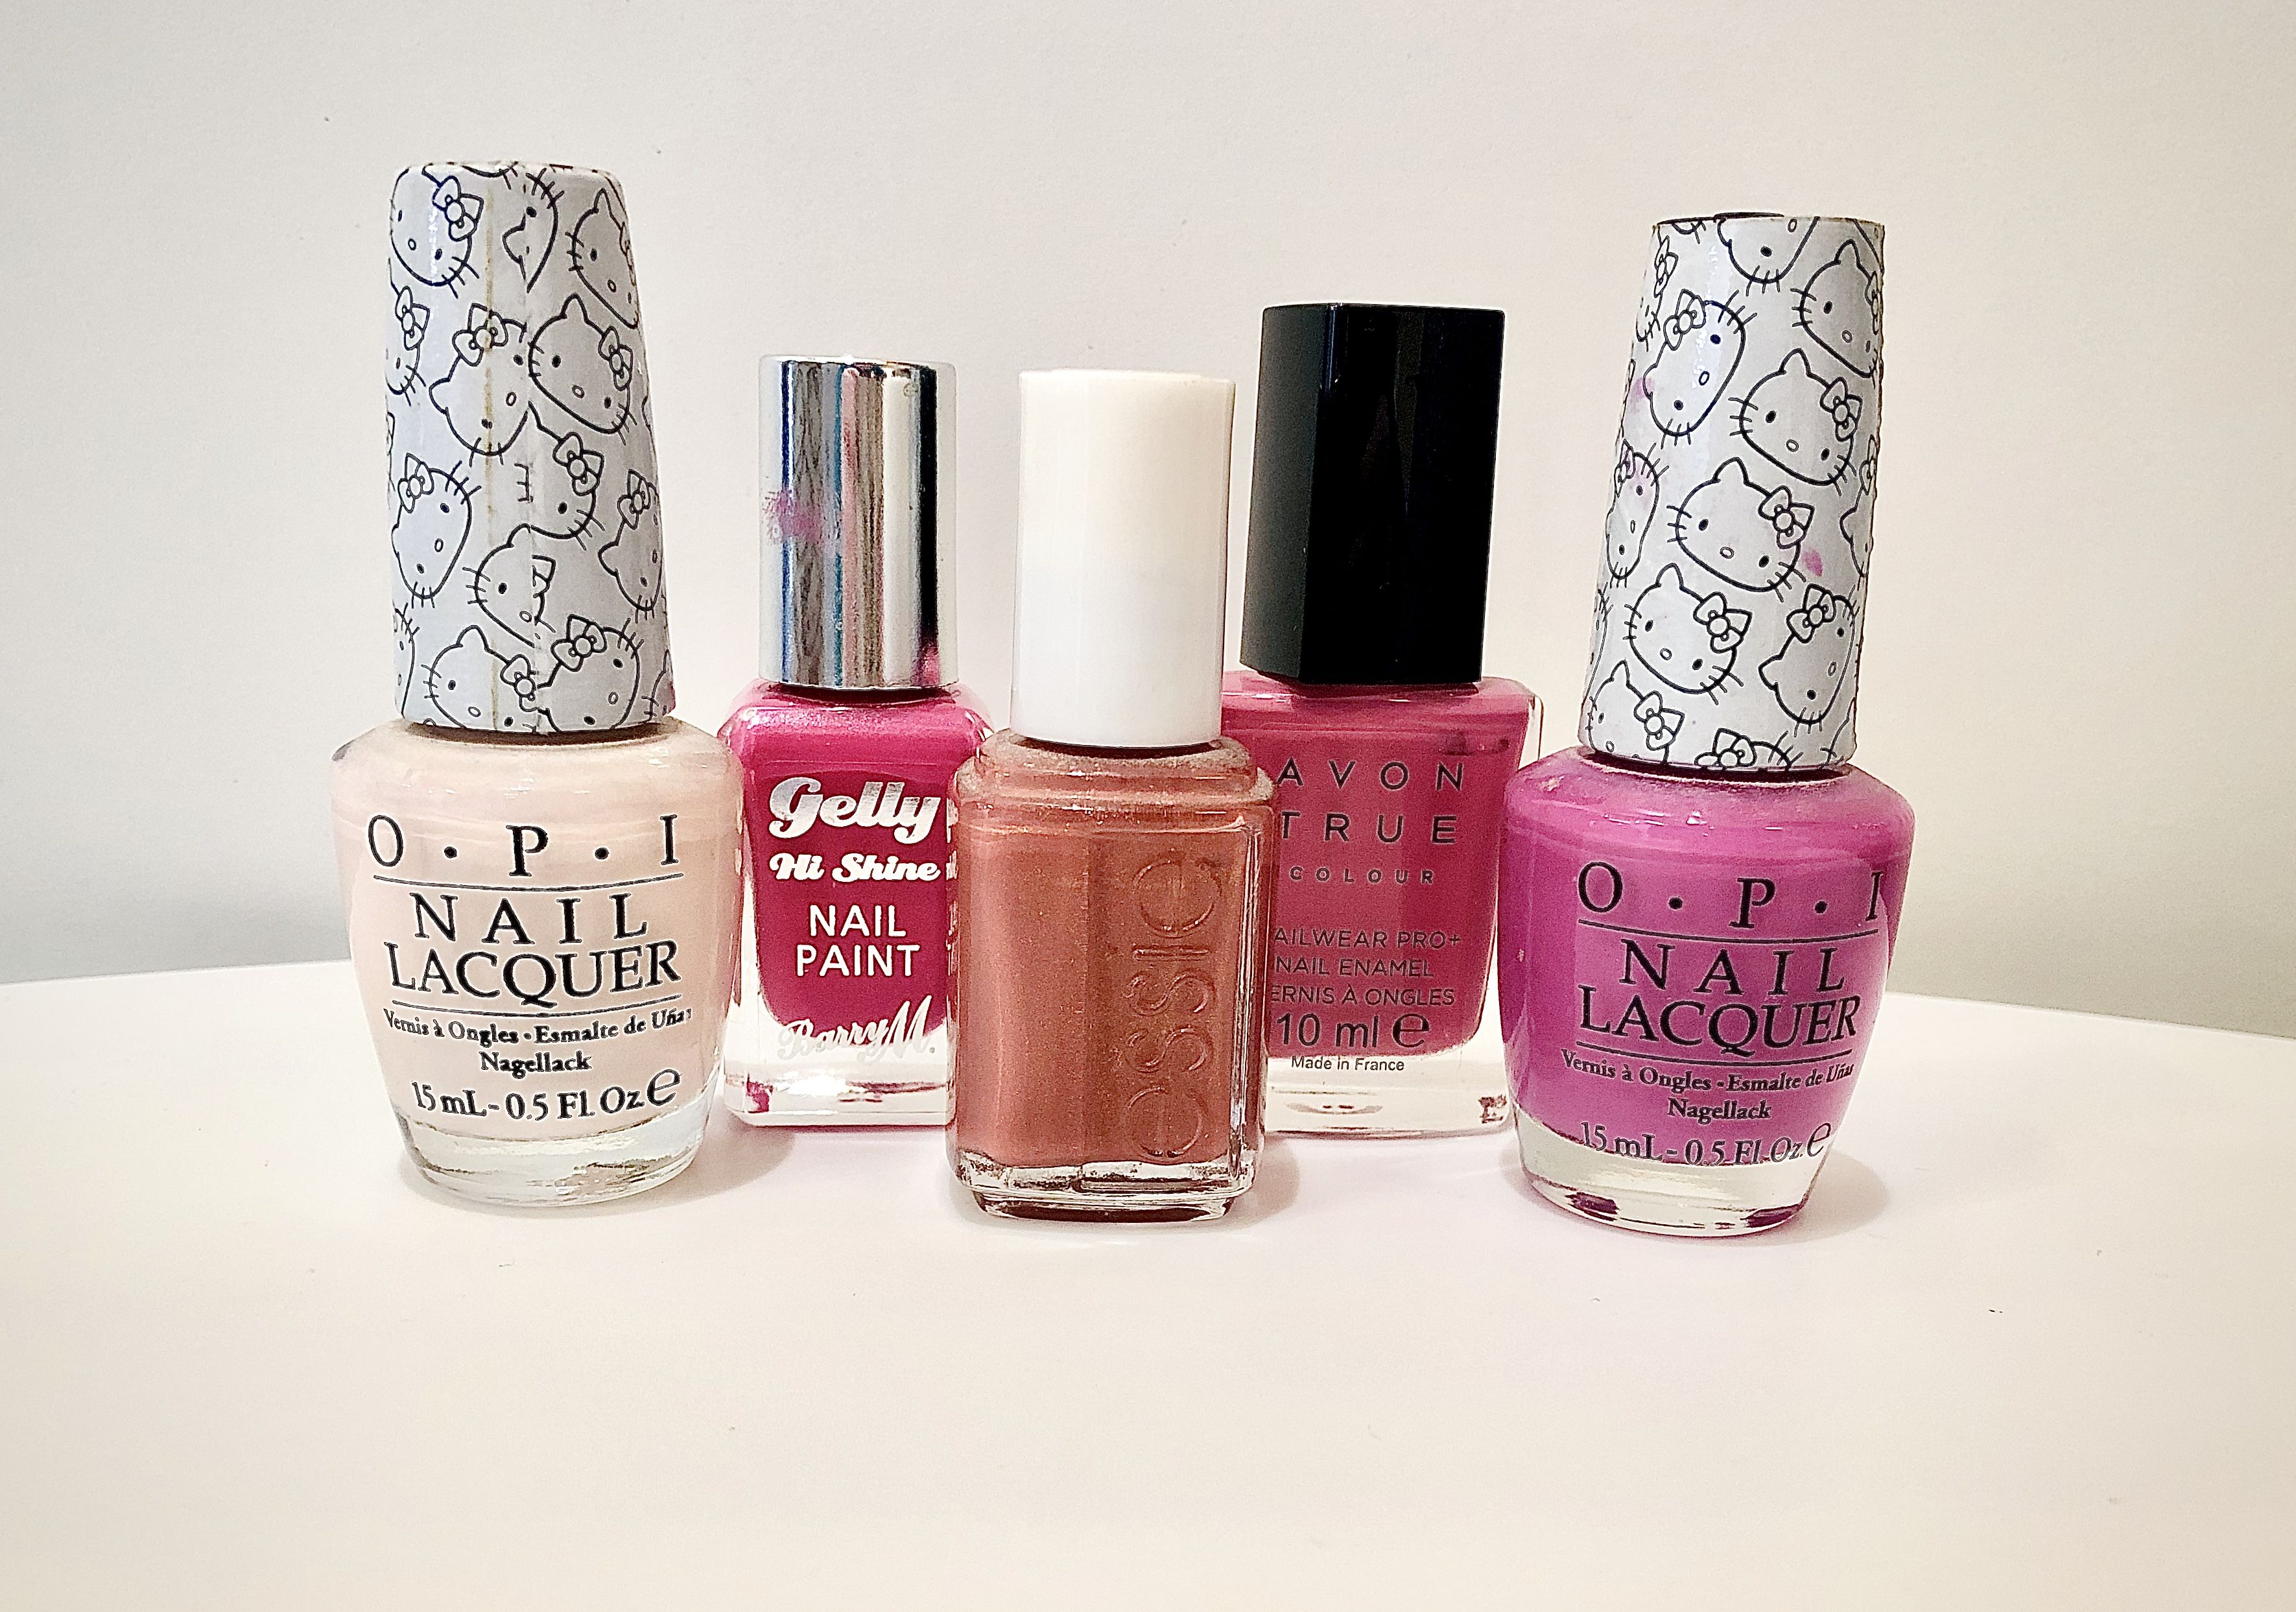 Nothing beats a perfectly painted pink manicure! I have listed my favourite shades of pink polishes from both high street and high end brands. From hot pinks to classic nude shades, there's certainly something your everyone and to suit every occasion. #nailpolish #nailpolishaddict #nailpolishlover #nailpolishlove #nailpolishaddicted #NailpolishRemover #nailpolishblogger #nailpolishart #nailpolishcollection #nailpolishlovers #nailpolishaddiction #pink #pinknails #pinklove #pinkaesthetic